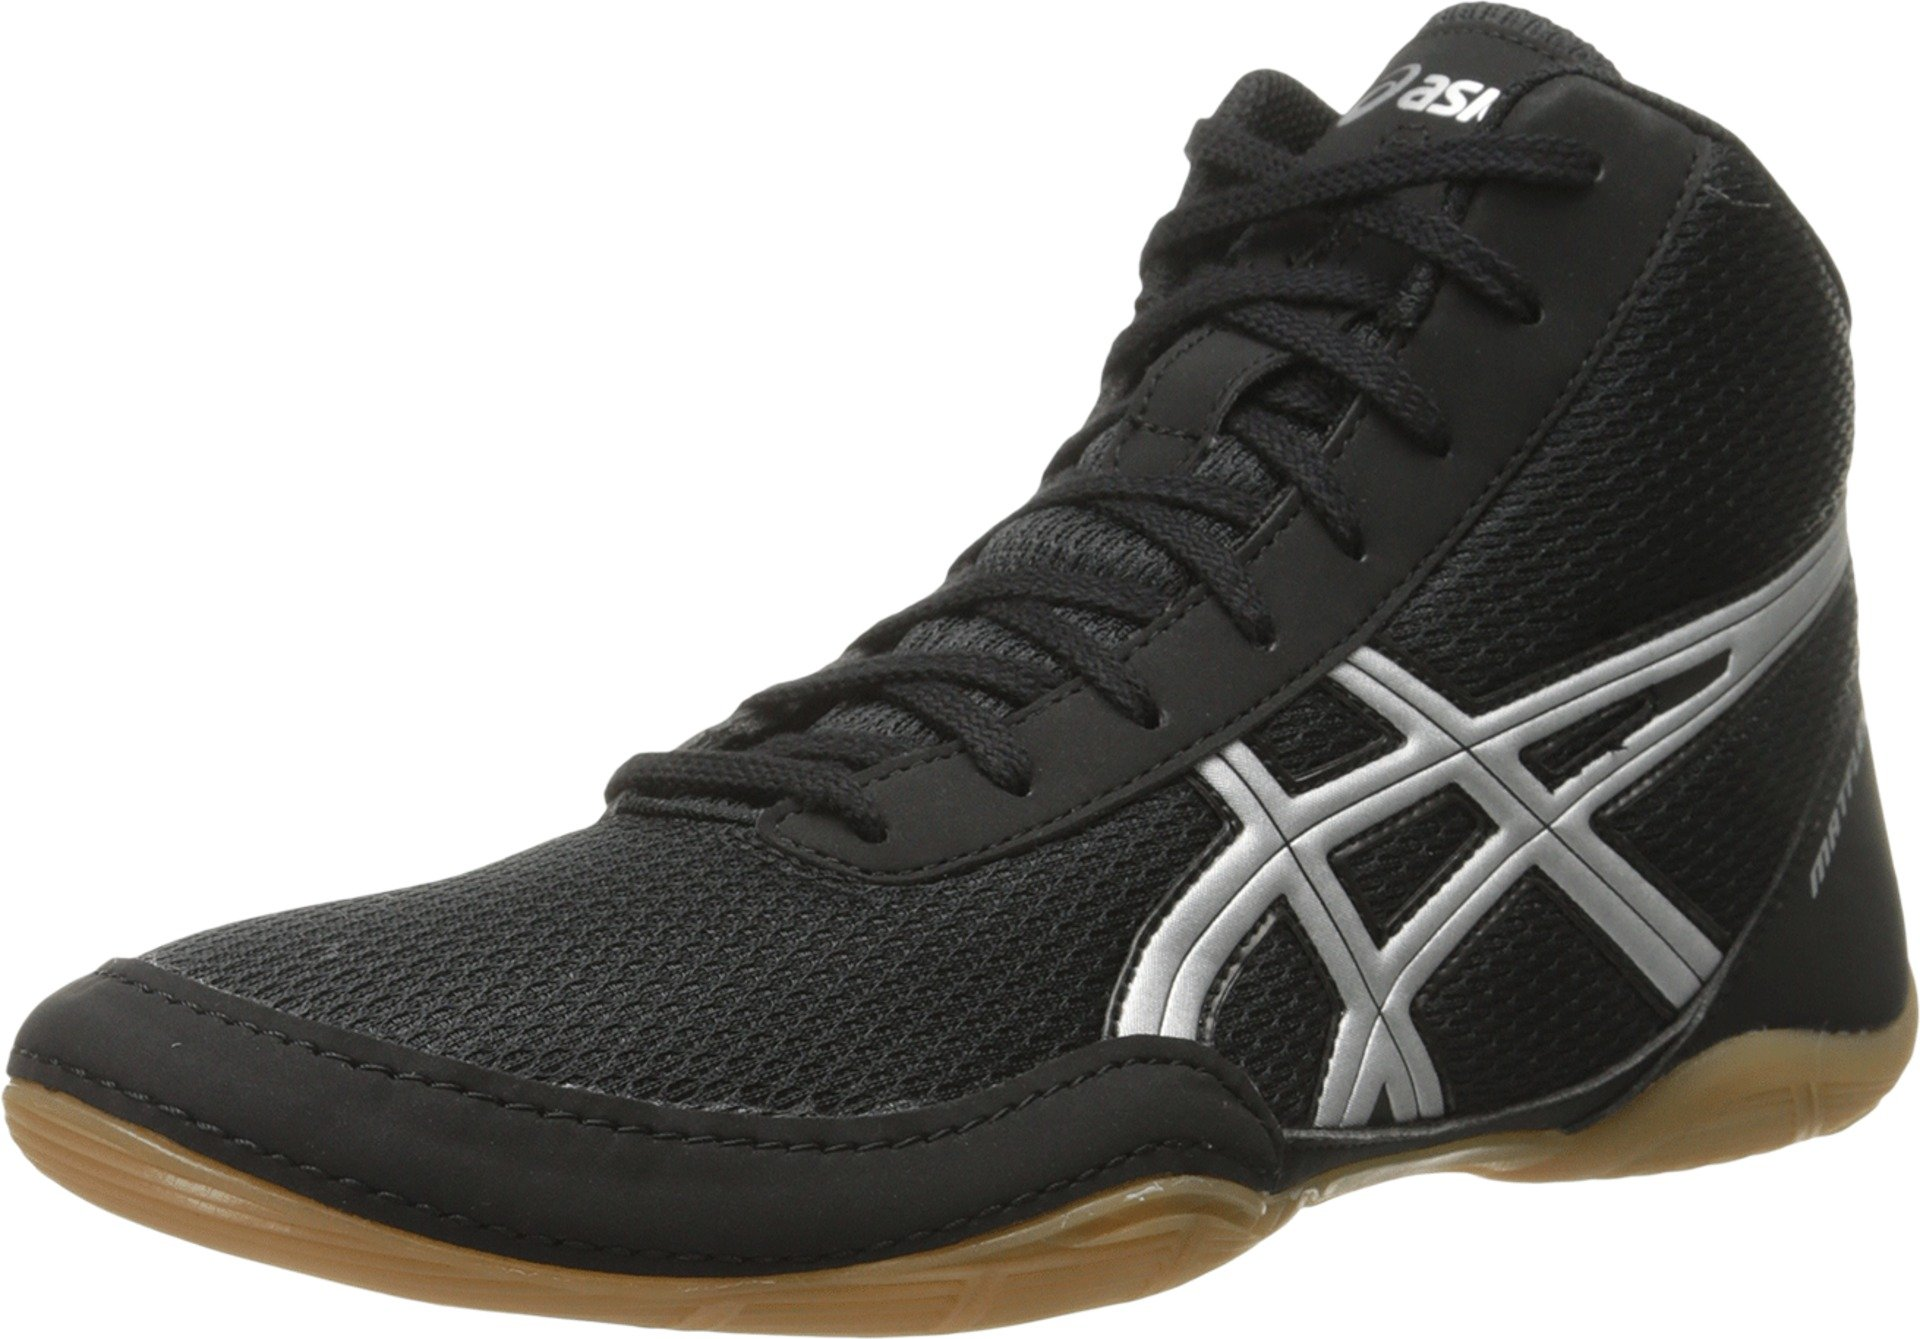 ASICS Men's Matflex 5 Wrestling Shoe, Black/Silver, 12 M US